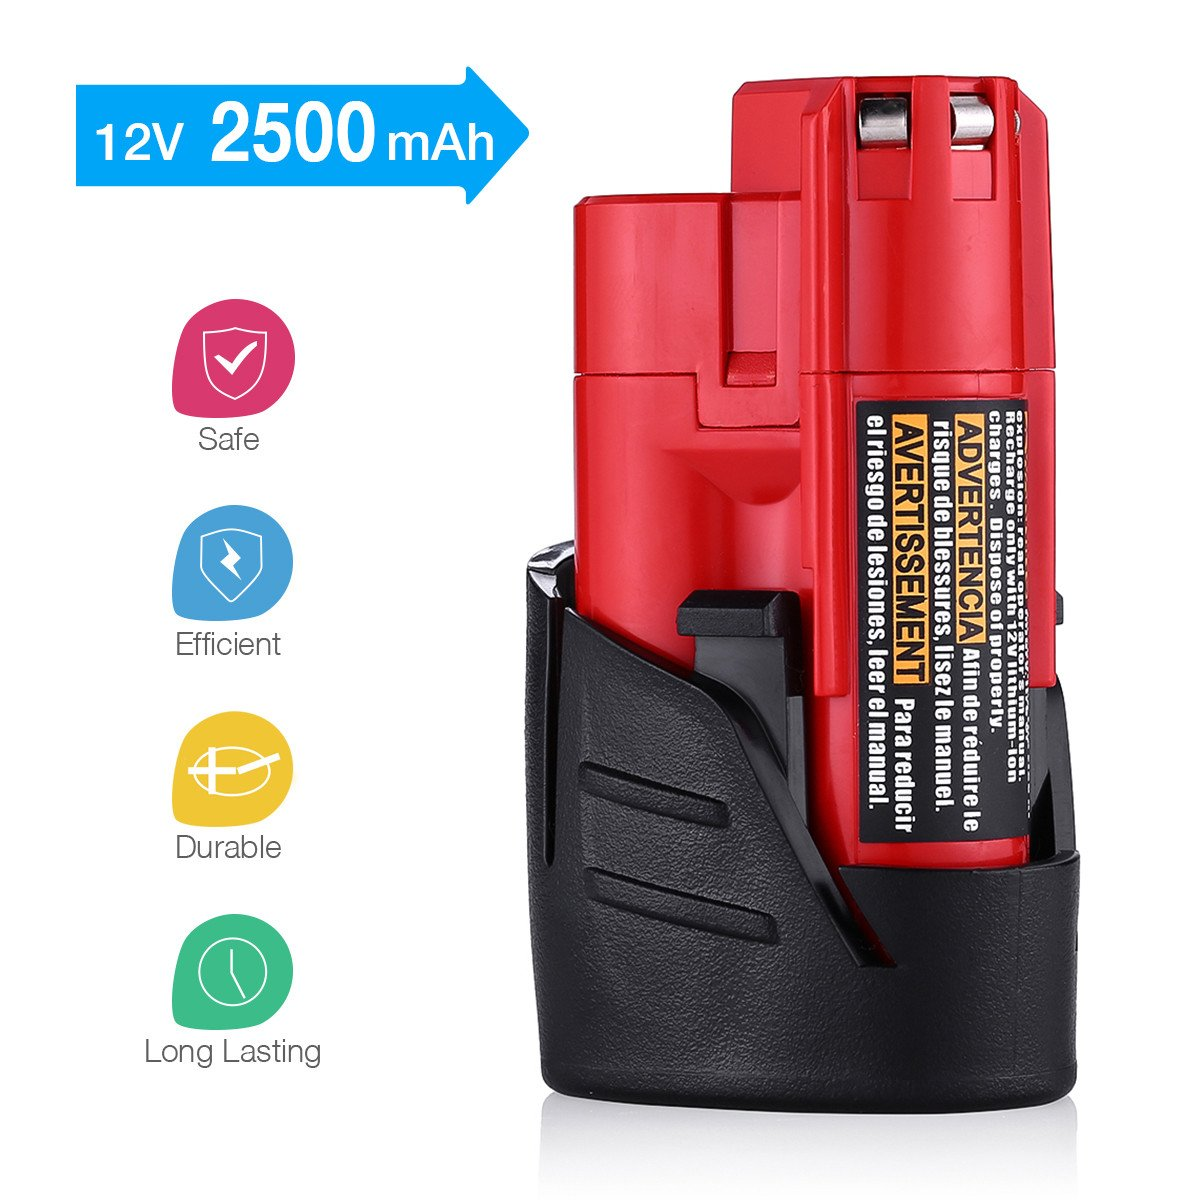 Powerextra 2 Pack 12V 2500mAh Lithium-ion Replacement Battery Compatible with Milwaukee M12 Milwaukee 48-11-2411 REDLITHIUM 12-Volt Cordless Milwaukee Tools Milwaukee 12V Battery Lithium-ion by Powerextra (Image #2)